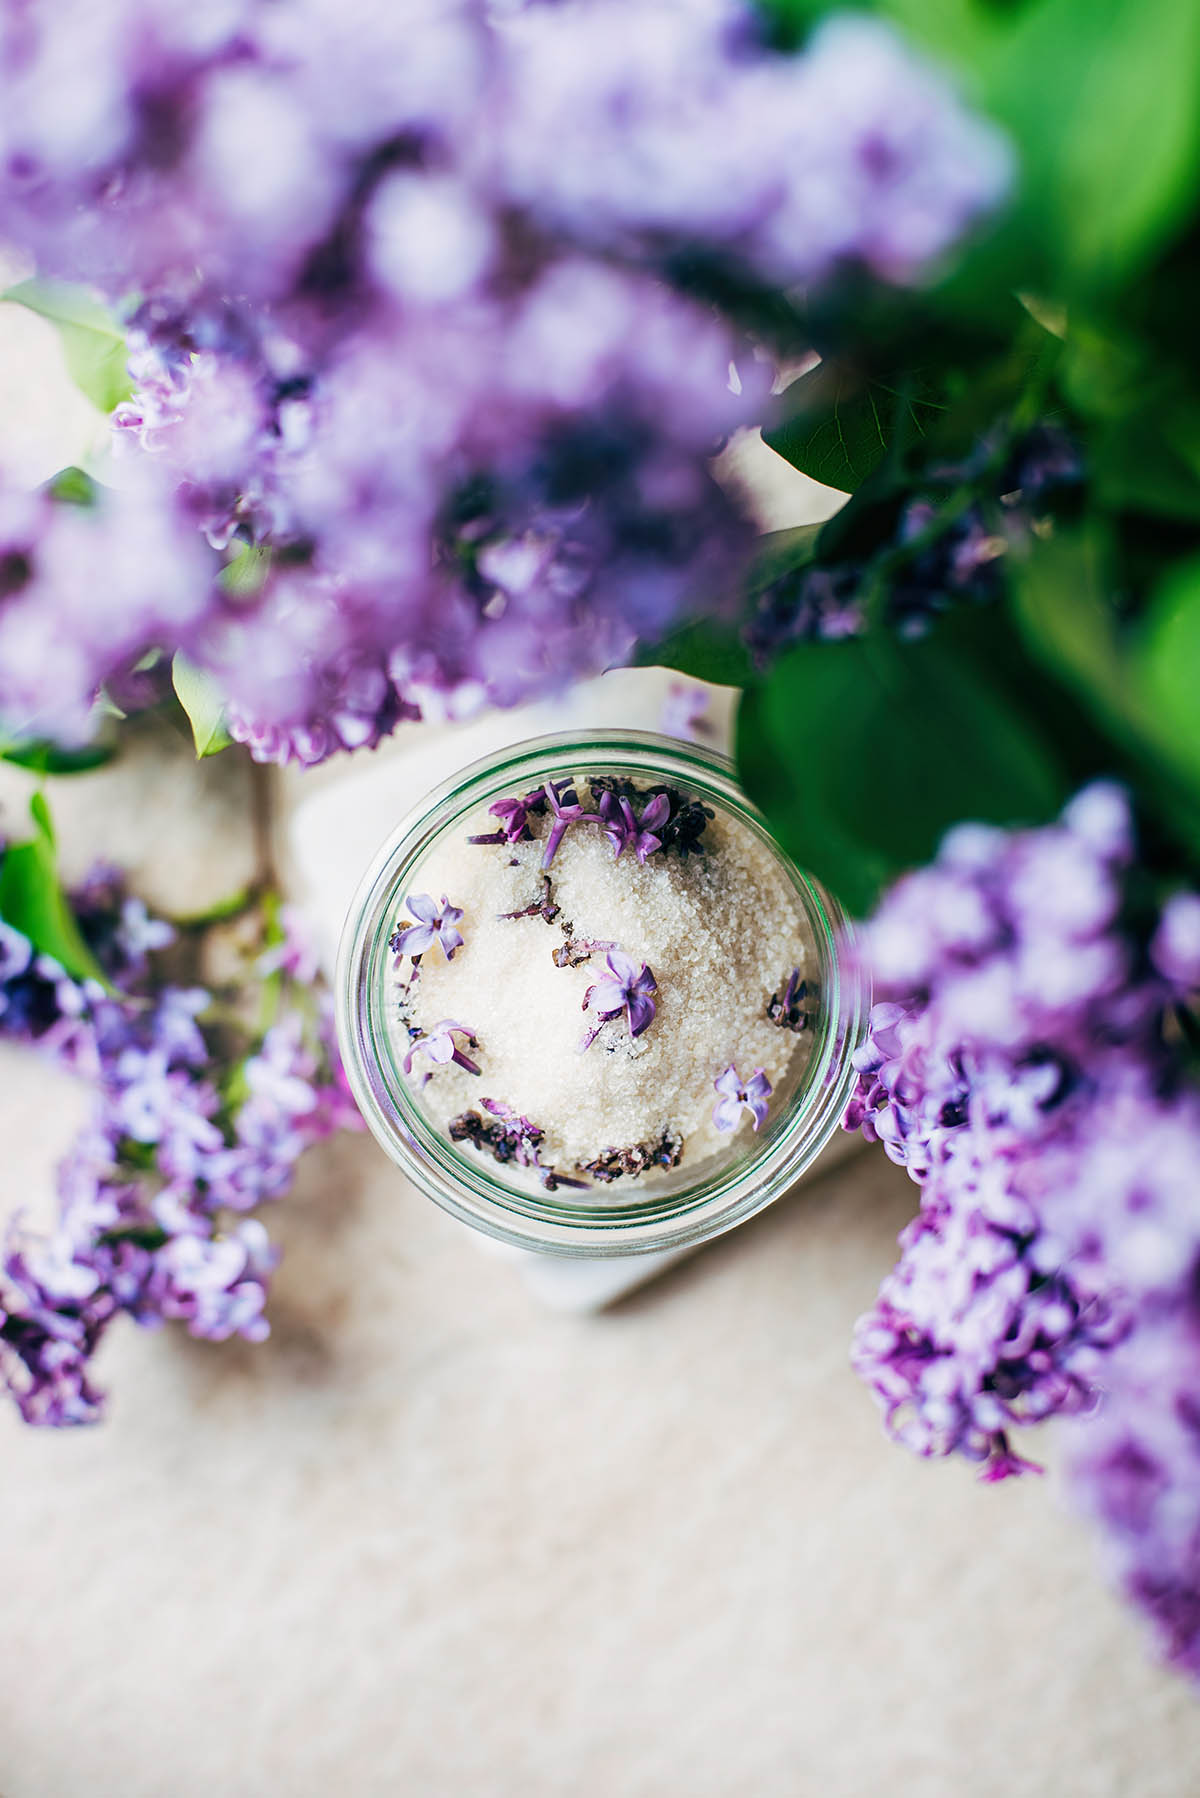 Lilac sugar in a glass jar framed by lilac blossoms.